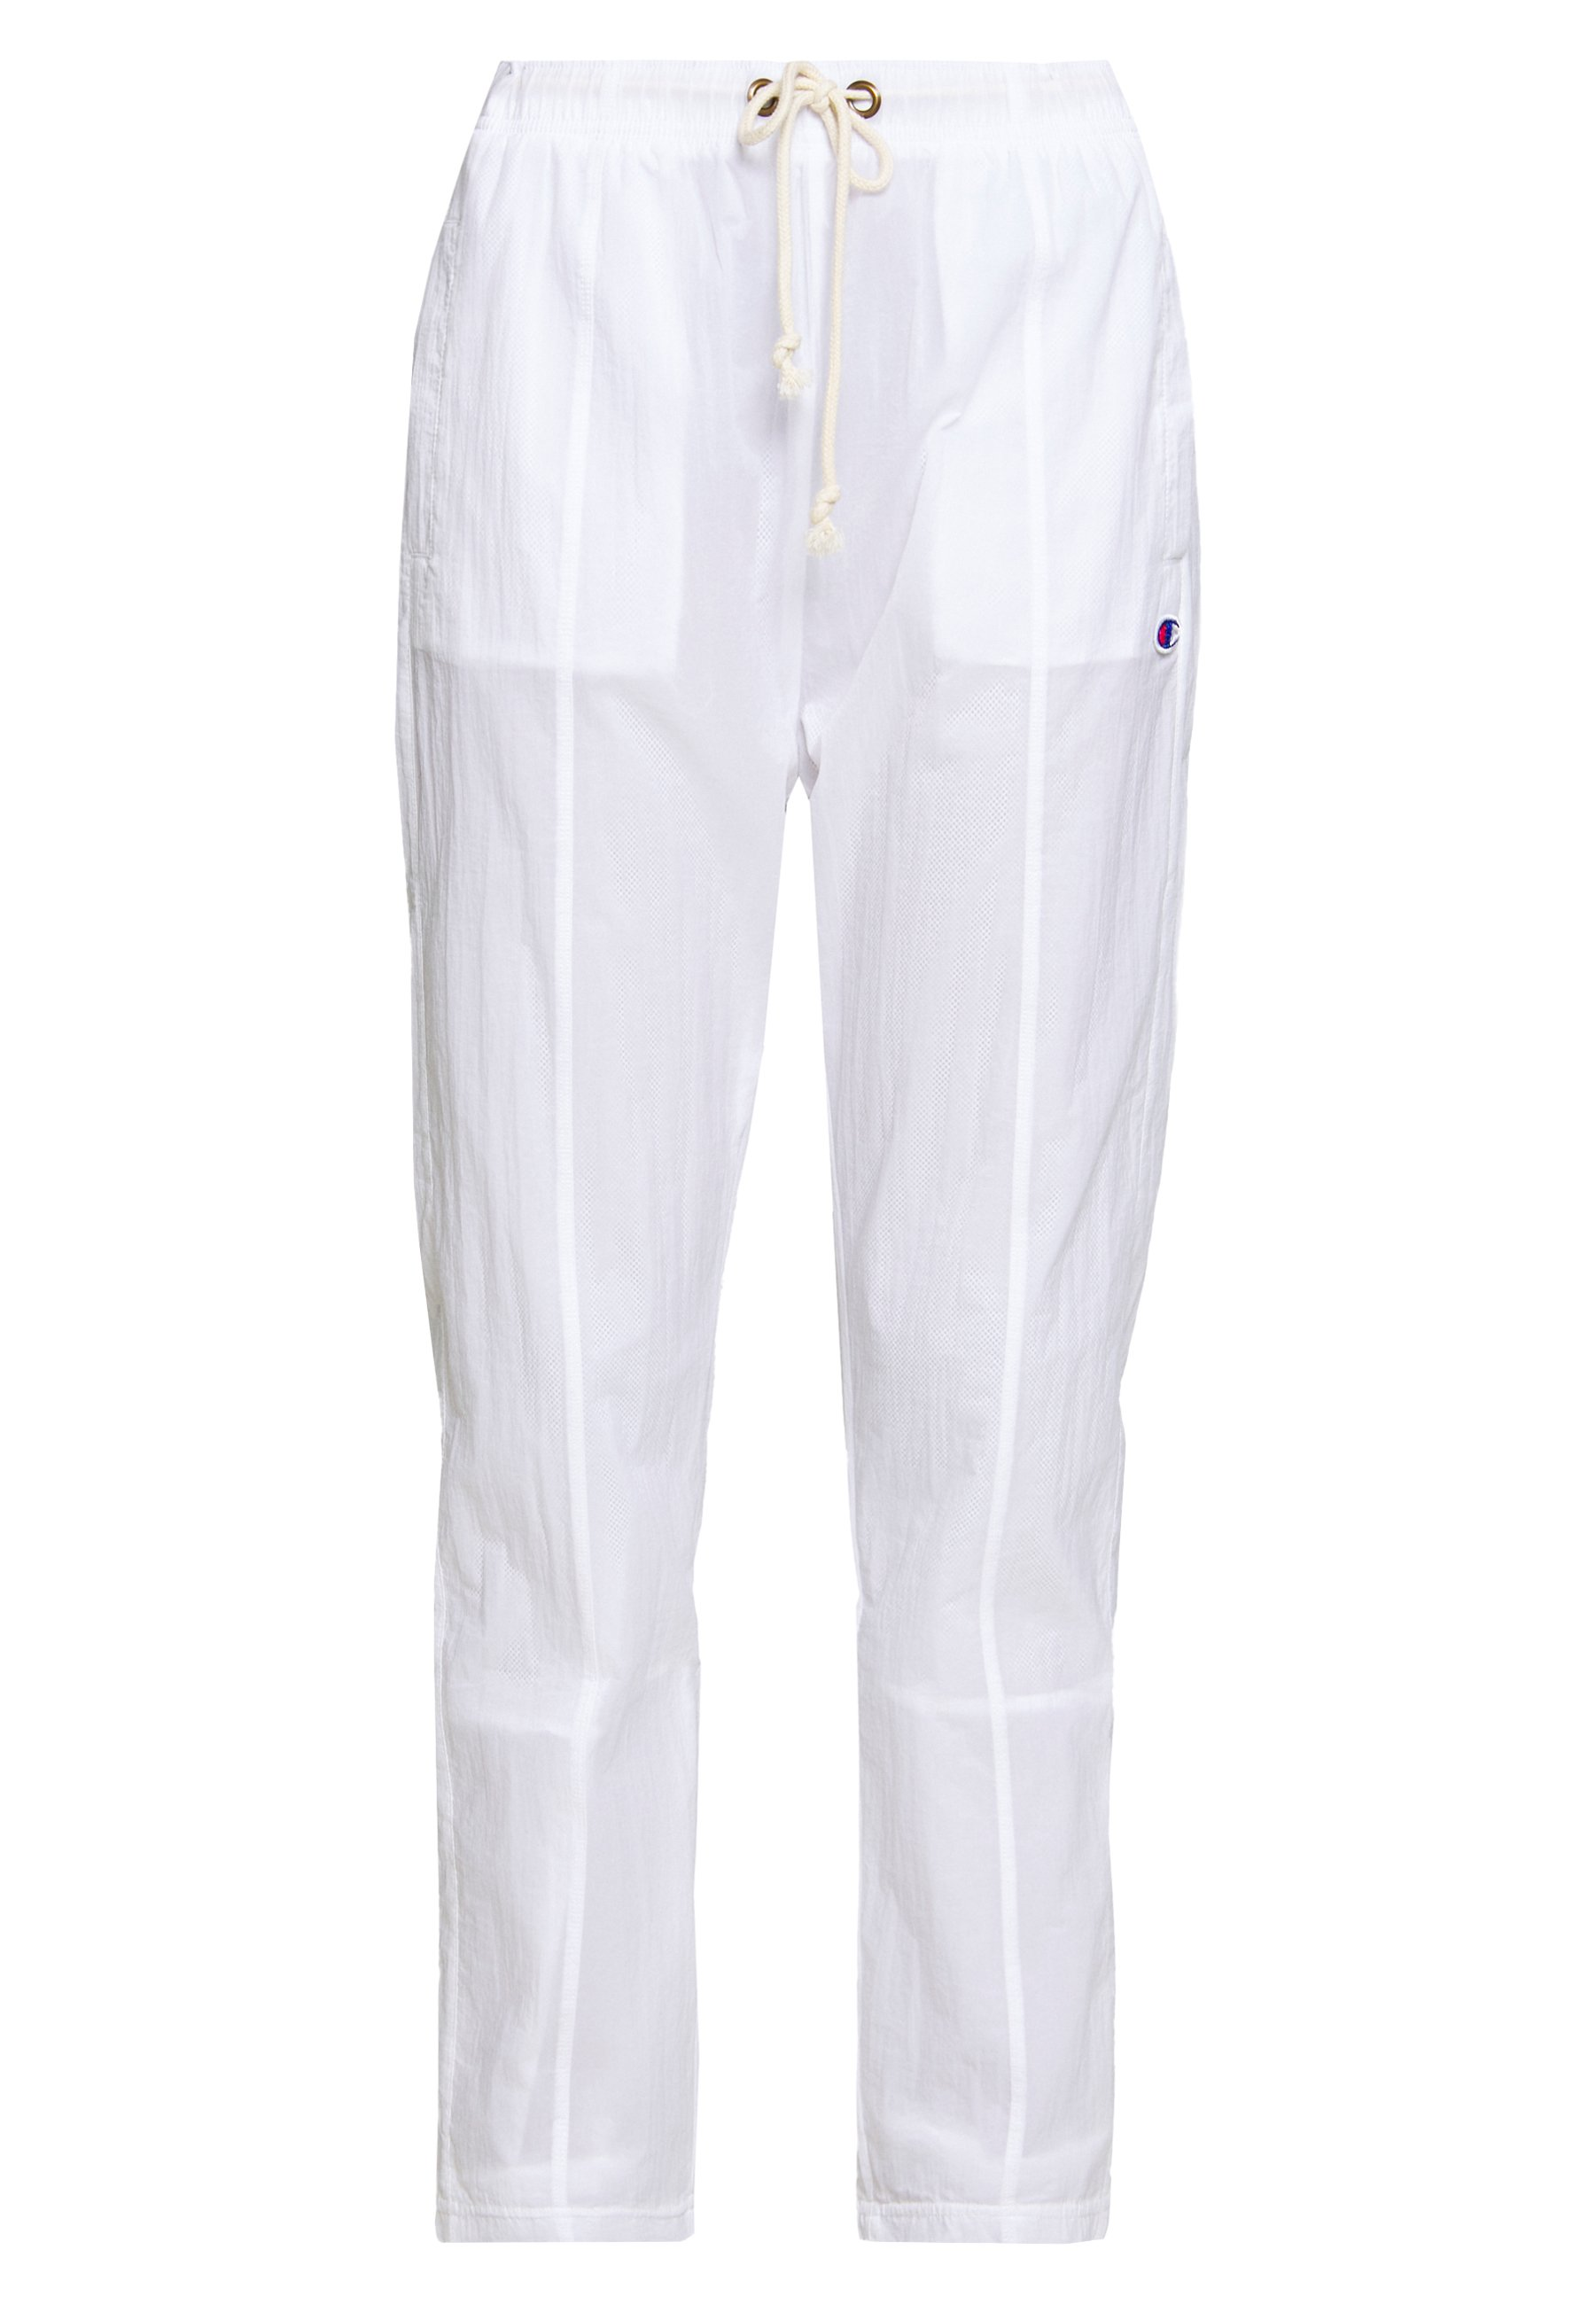 Champion Reverse Weave Long Pants - Tracksuit Bottoms White